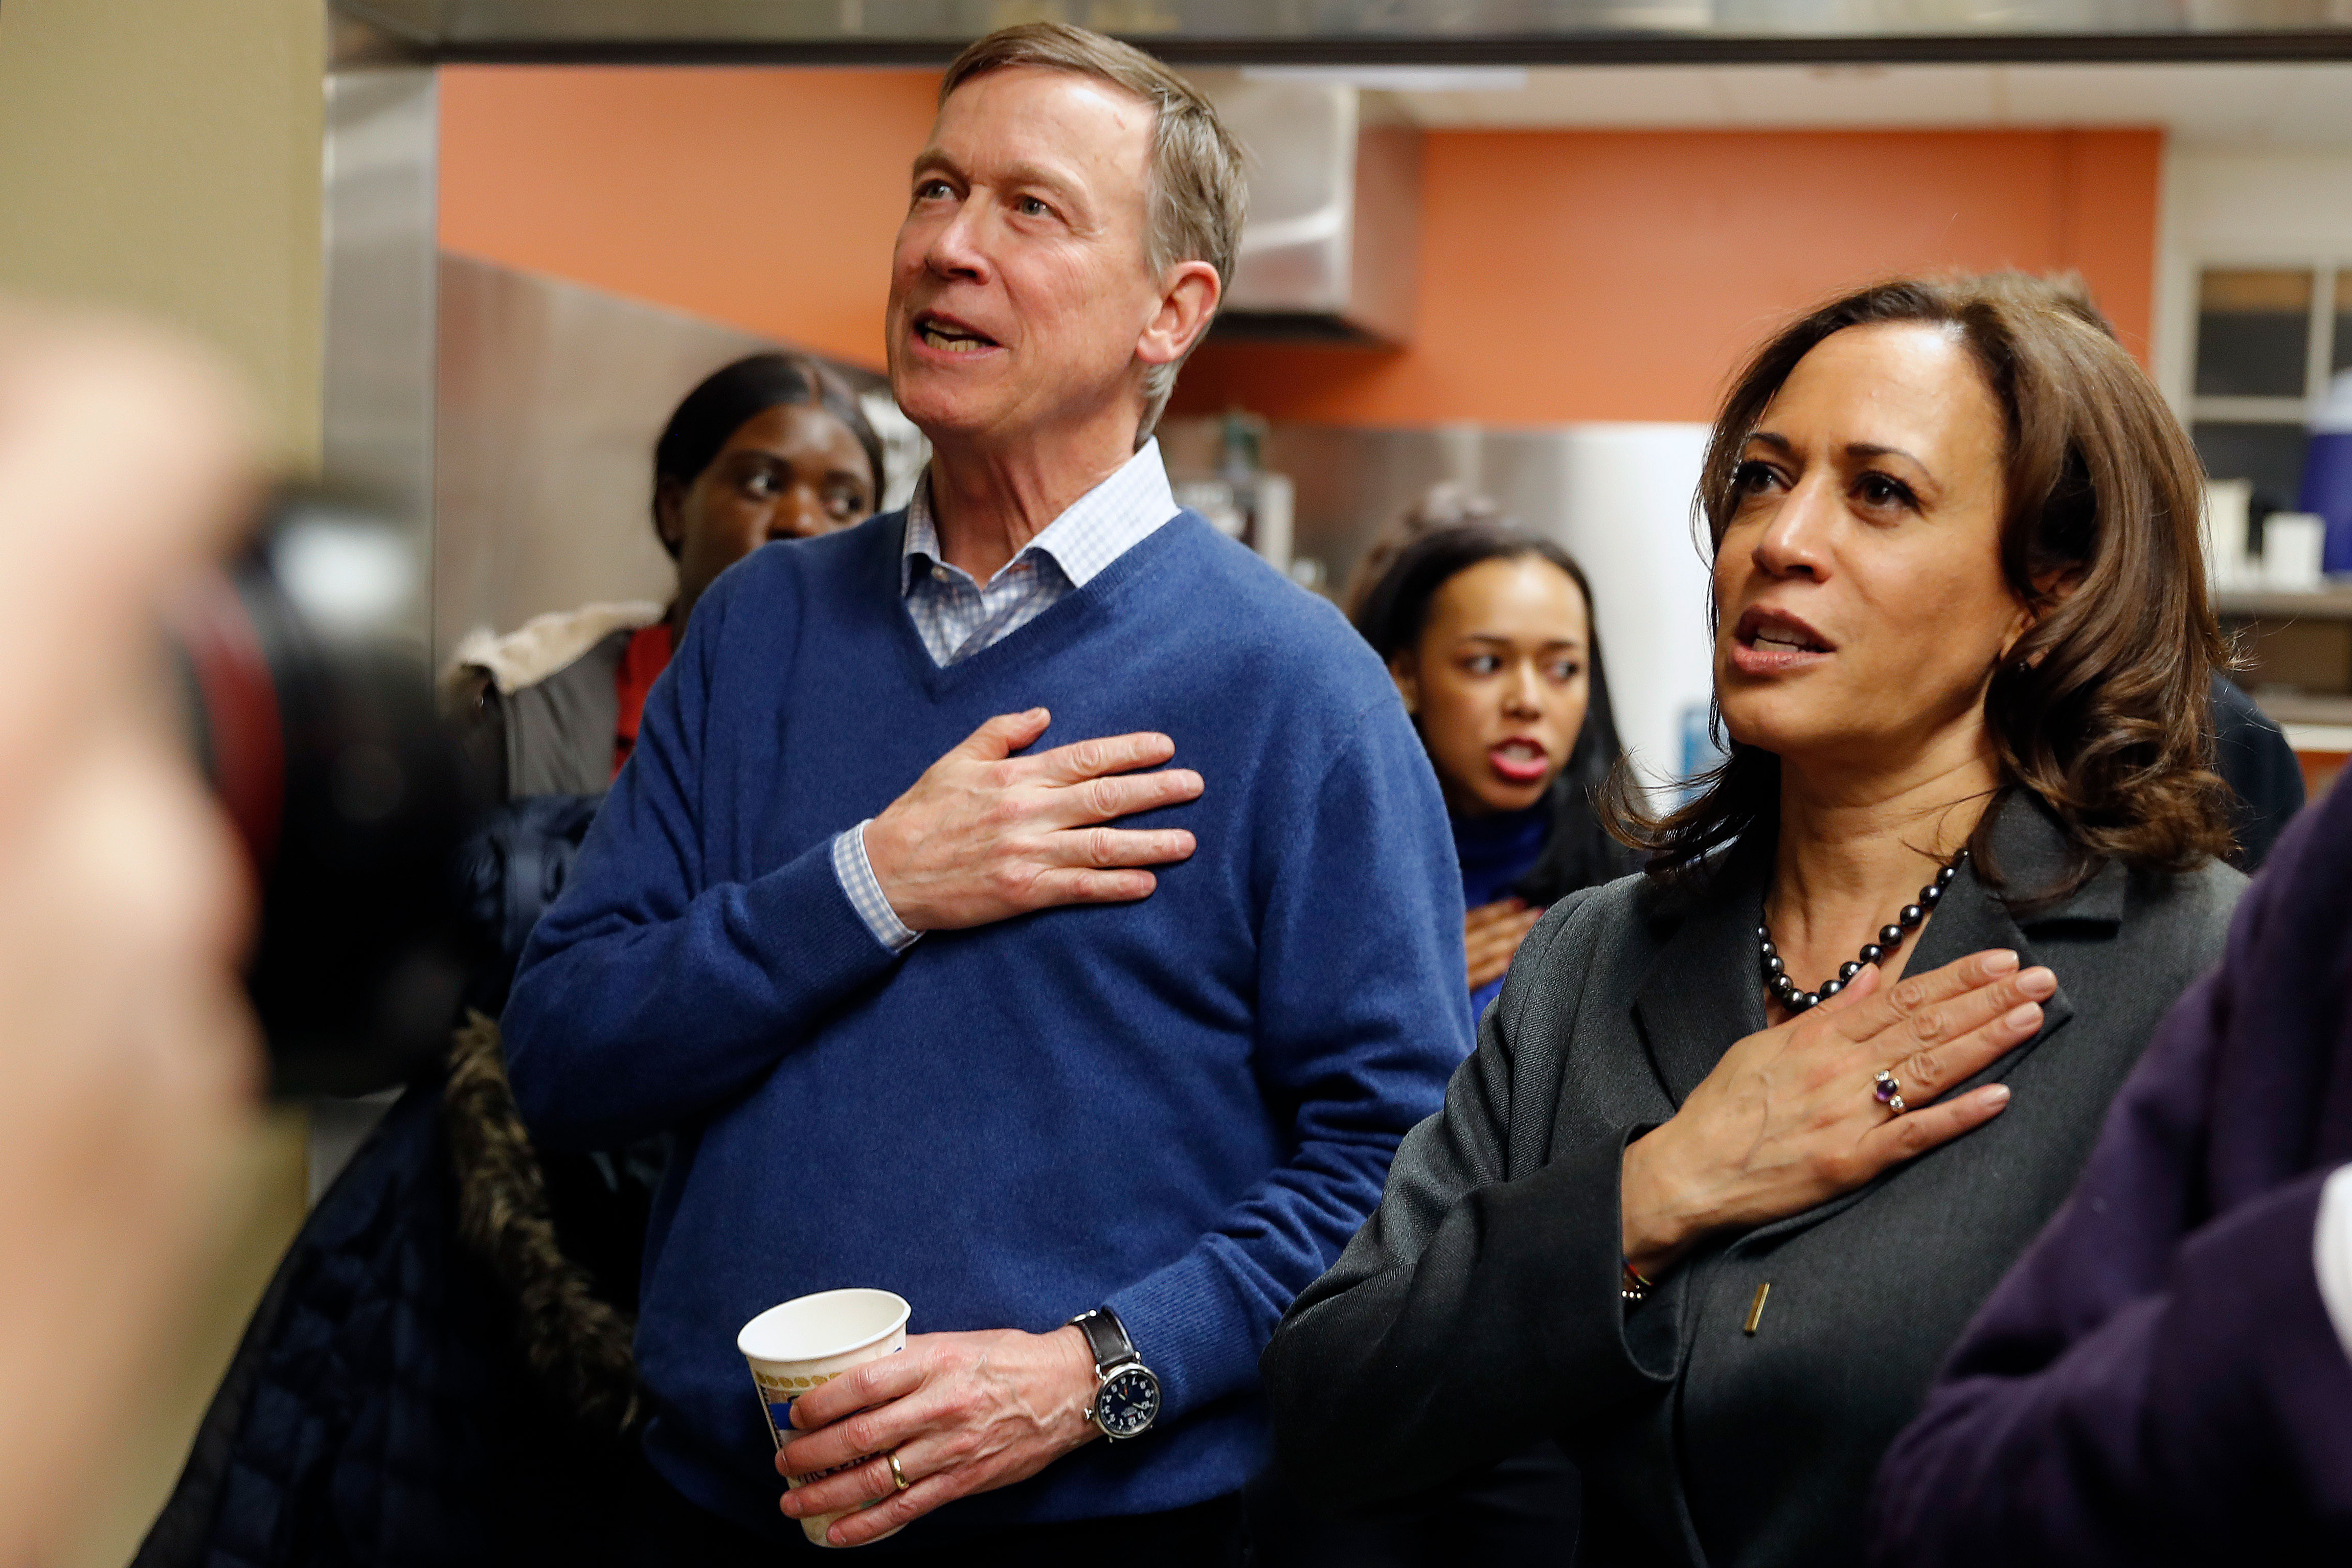 Photo: Hickenlooper-Bennet Iowa Politicking 1| Hickenlooper & Harris - MP